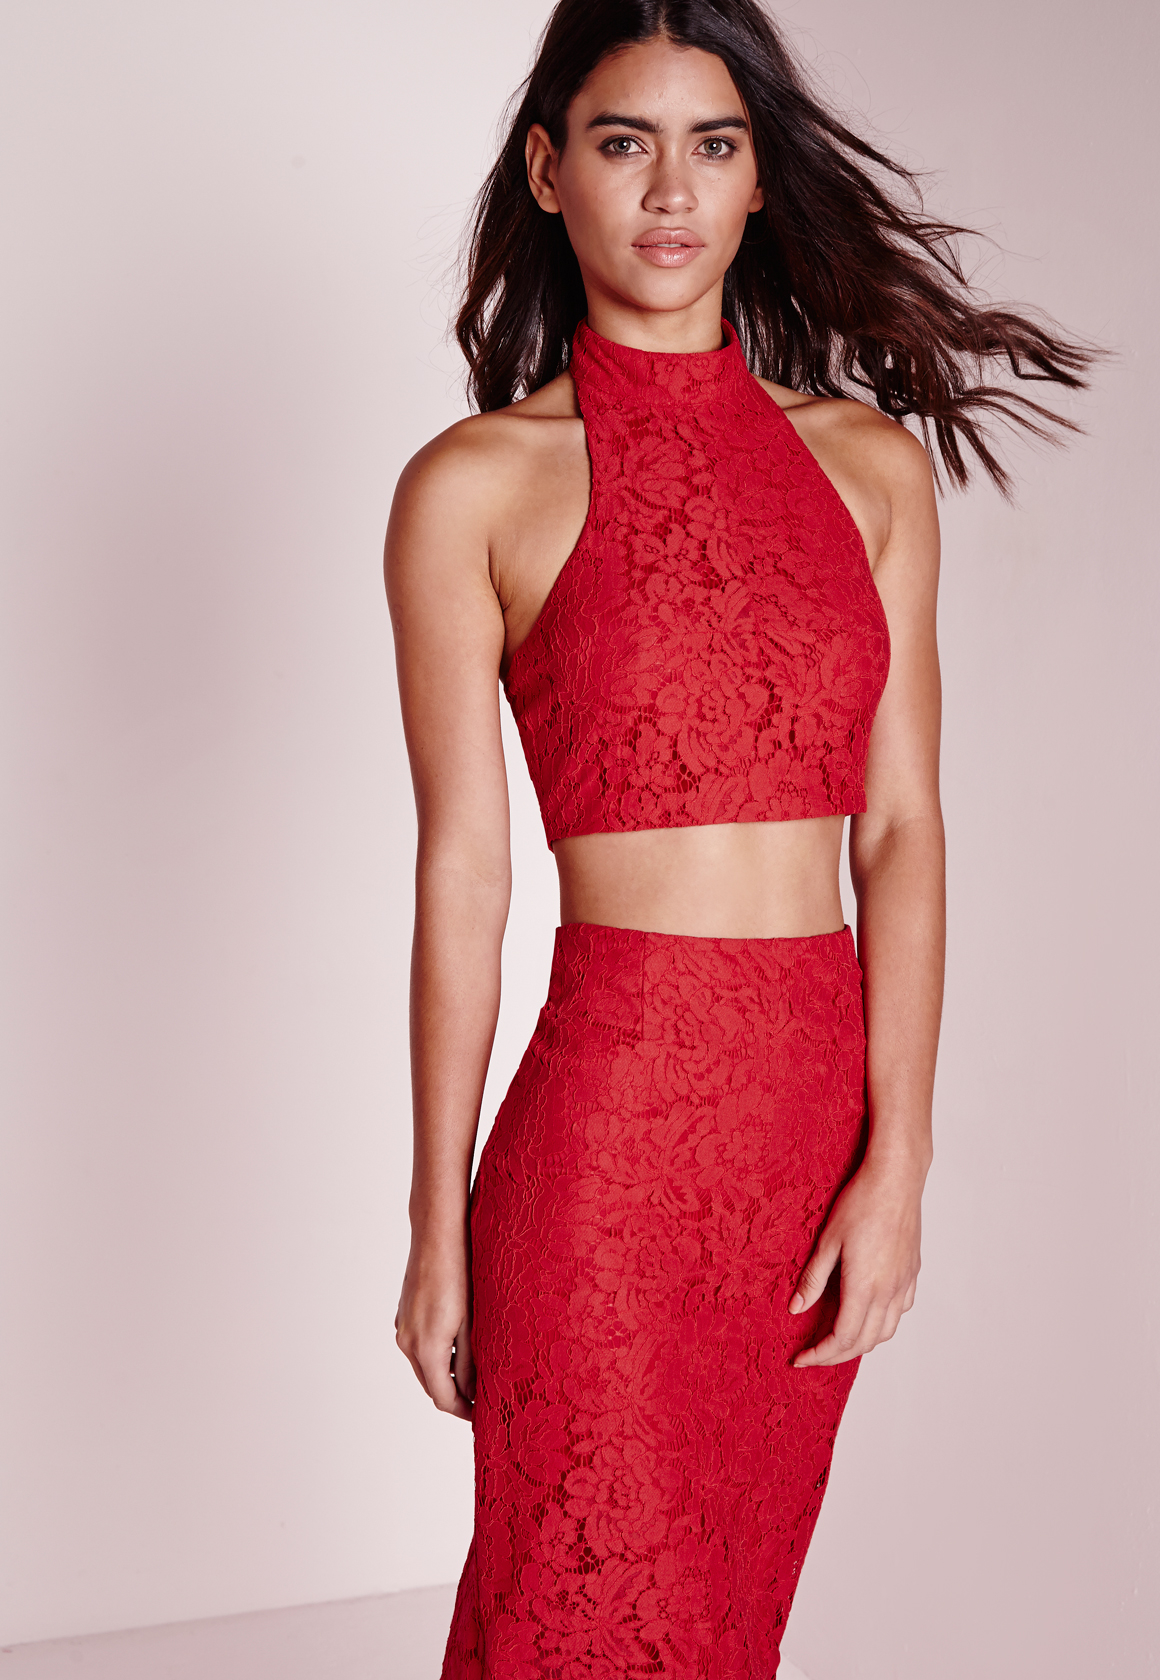 Lyst - Missguided Choker Lace Halter Top Red in Red